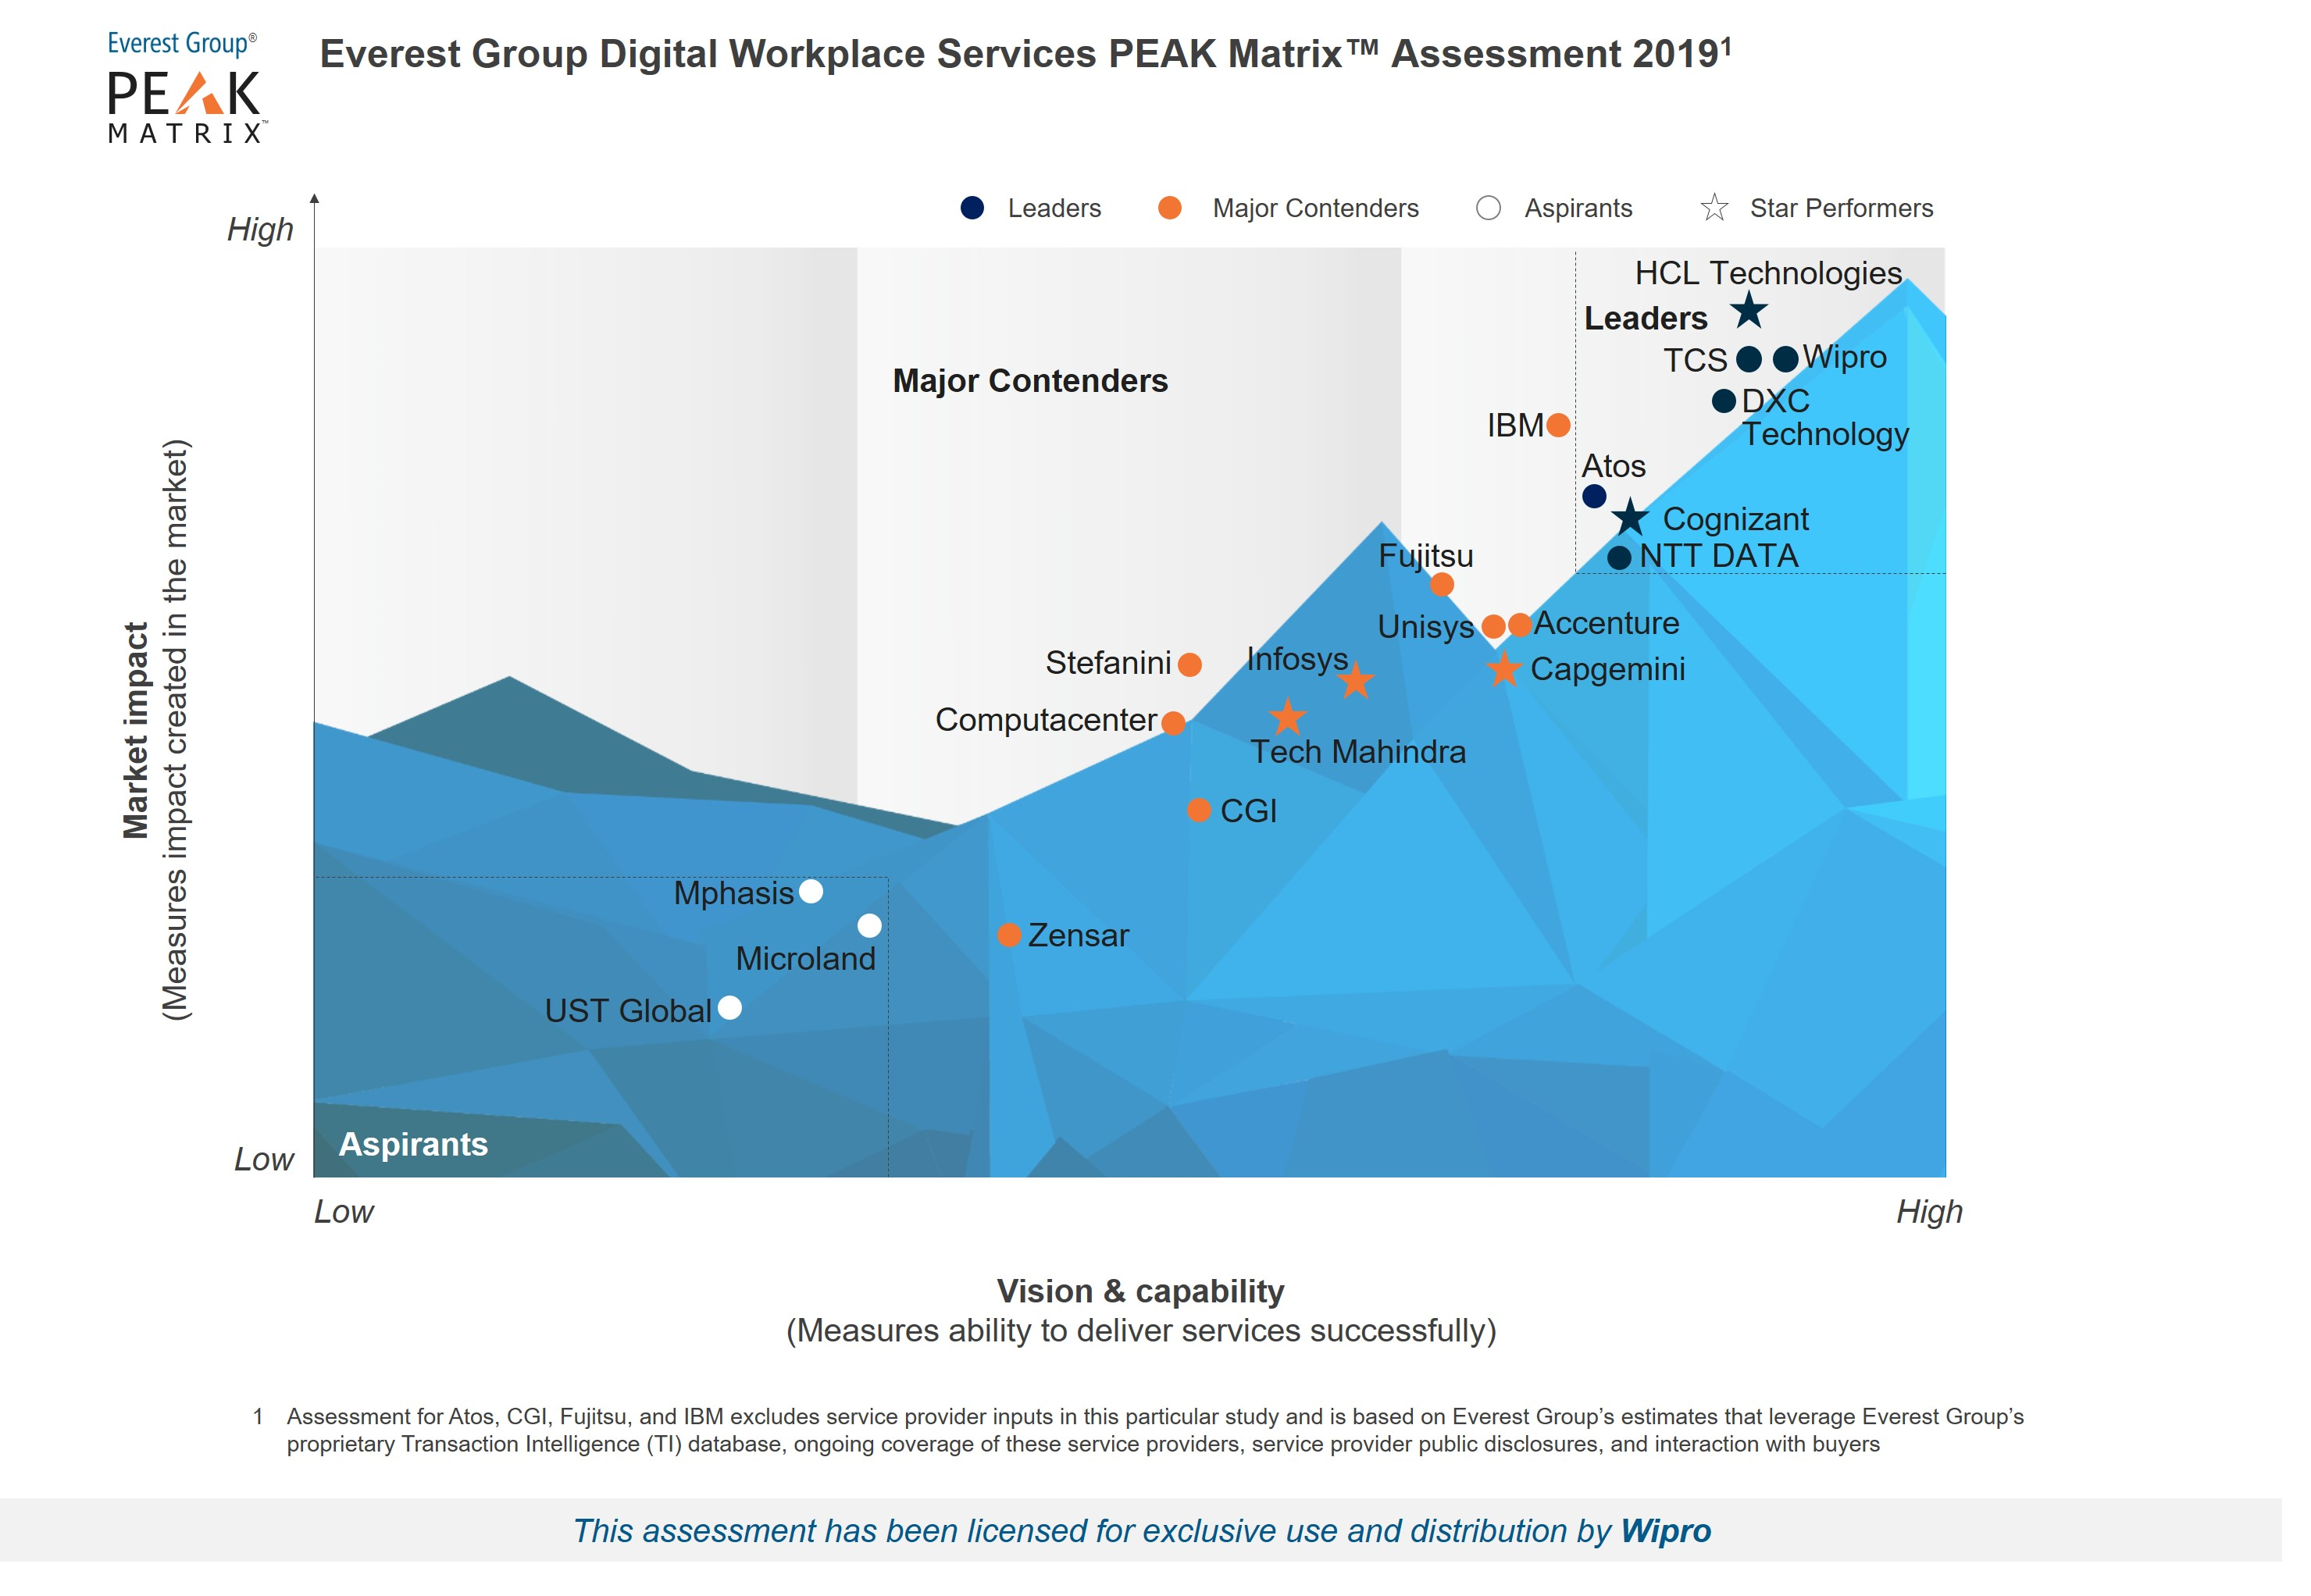 Wipro has been positioned as a Leader in Digital Workplace Services PEAK Matrix™